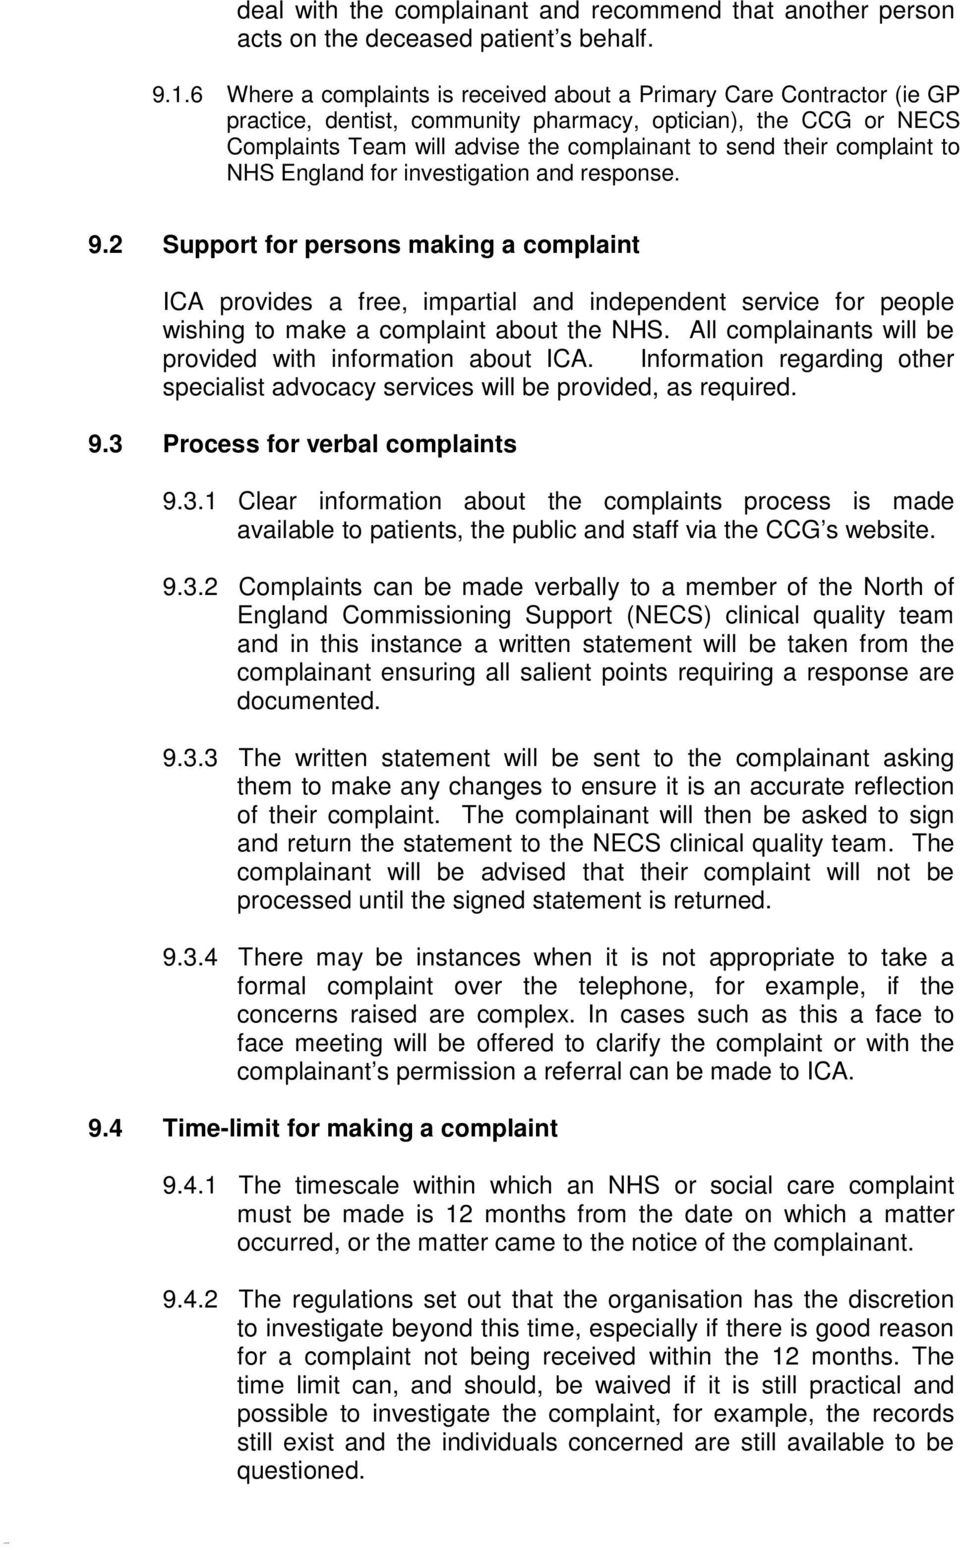 complaint to NHS England for investigation and response. 9.